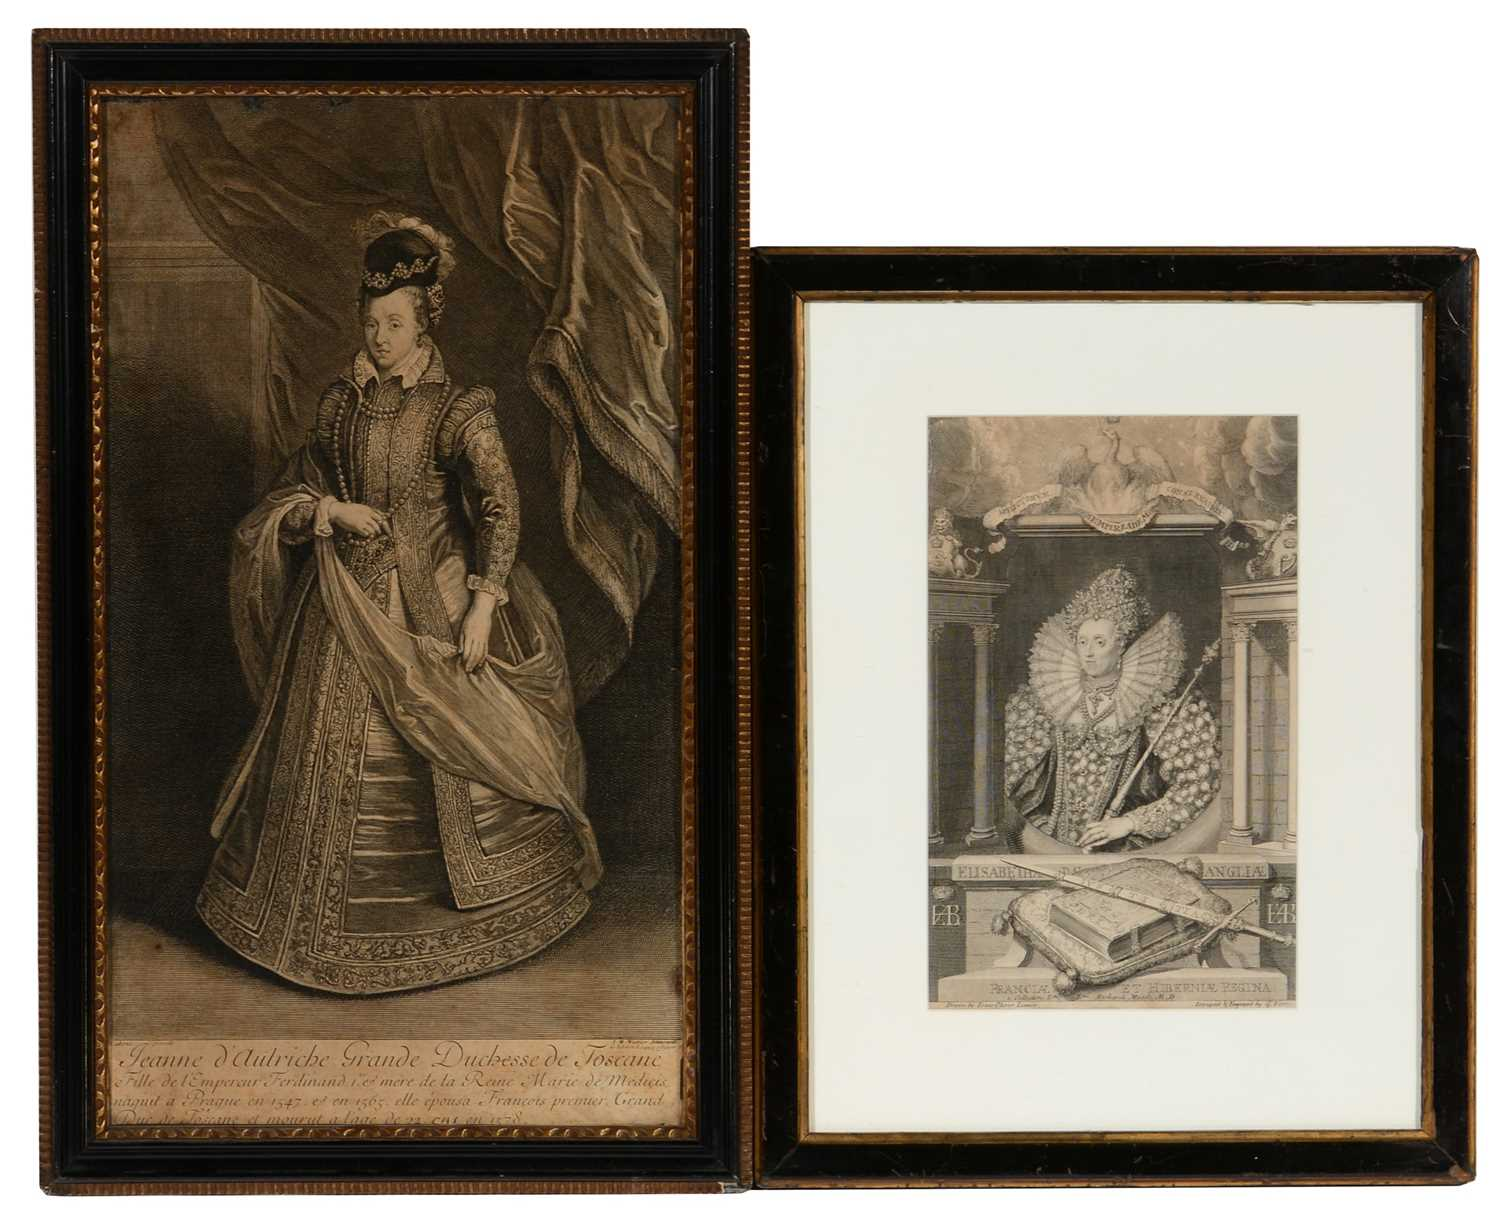 Lot 610 - Two engravings of monarchs, including one after Peter Paul Rubens.